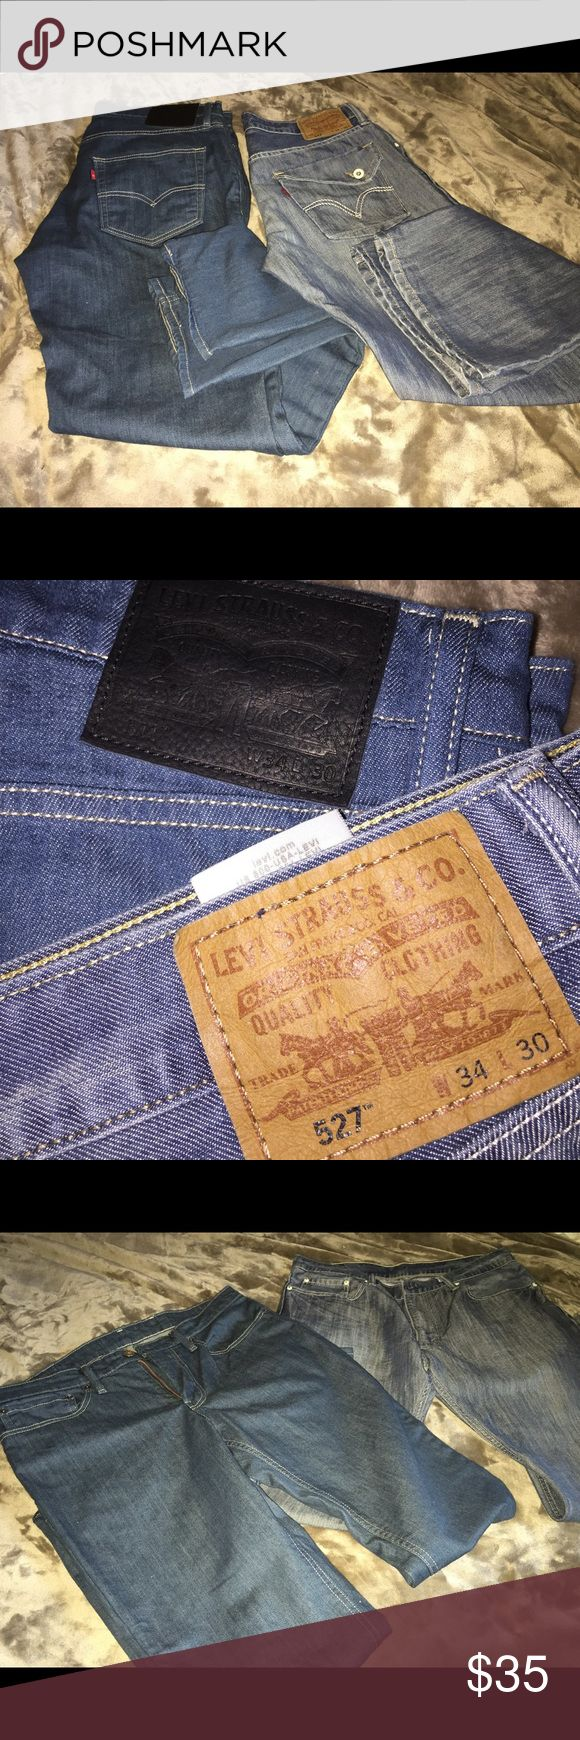 Mens Levi's jeans Bundle of Levi's jeans in wonderful condition. Both are size 34x30. One pair are 511 Straight leg and the other 527 Boot Cut Levi's Jeans